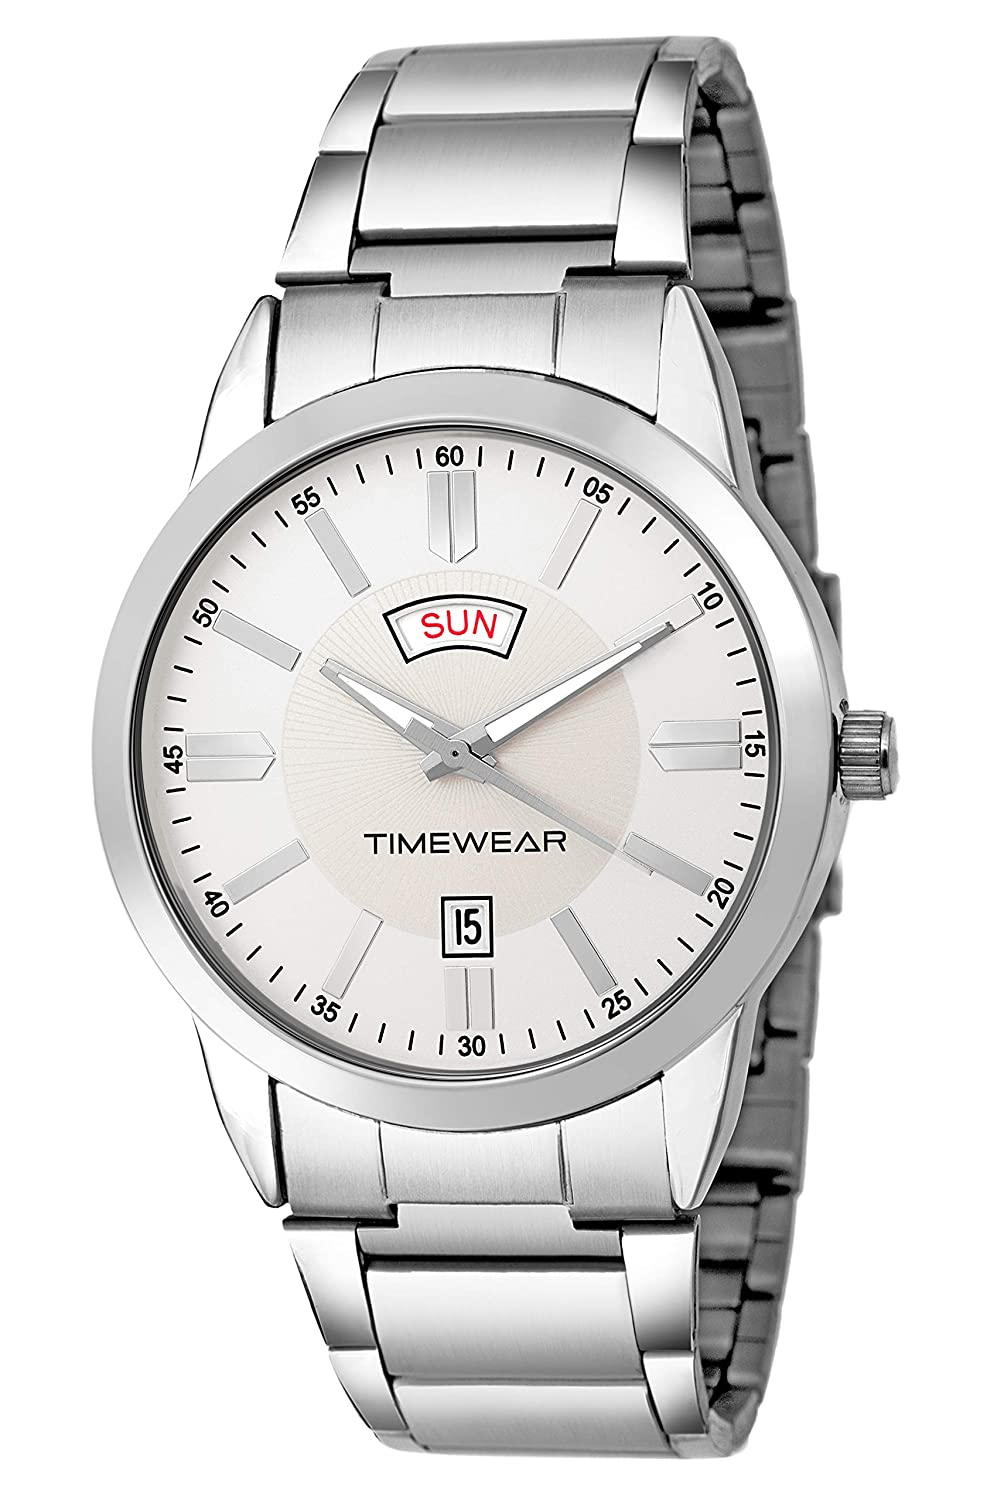 Timewear Analog Silver Dial Formal Day And Date Display